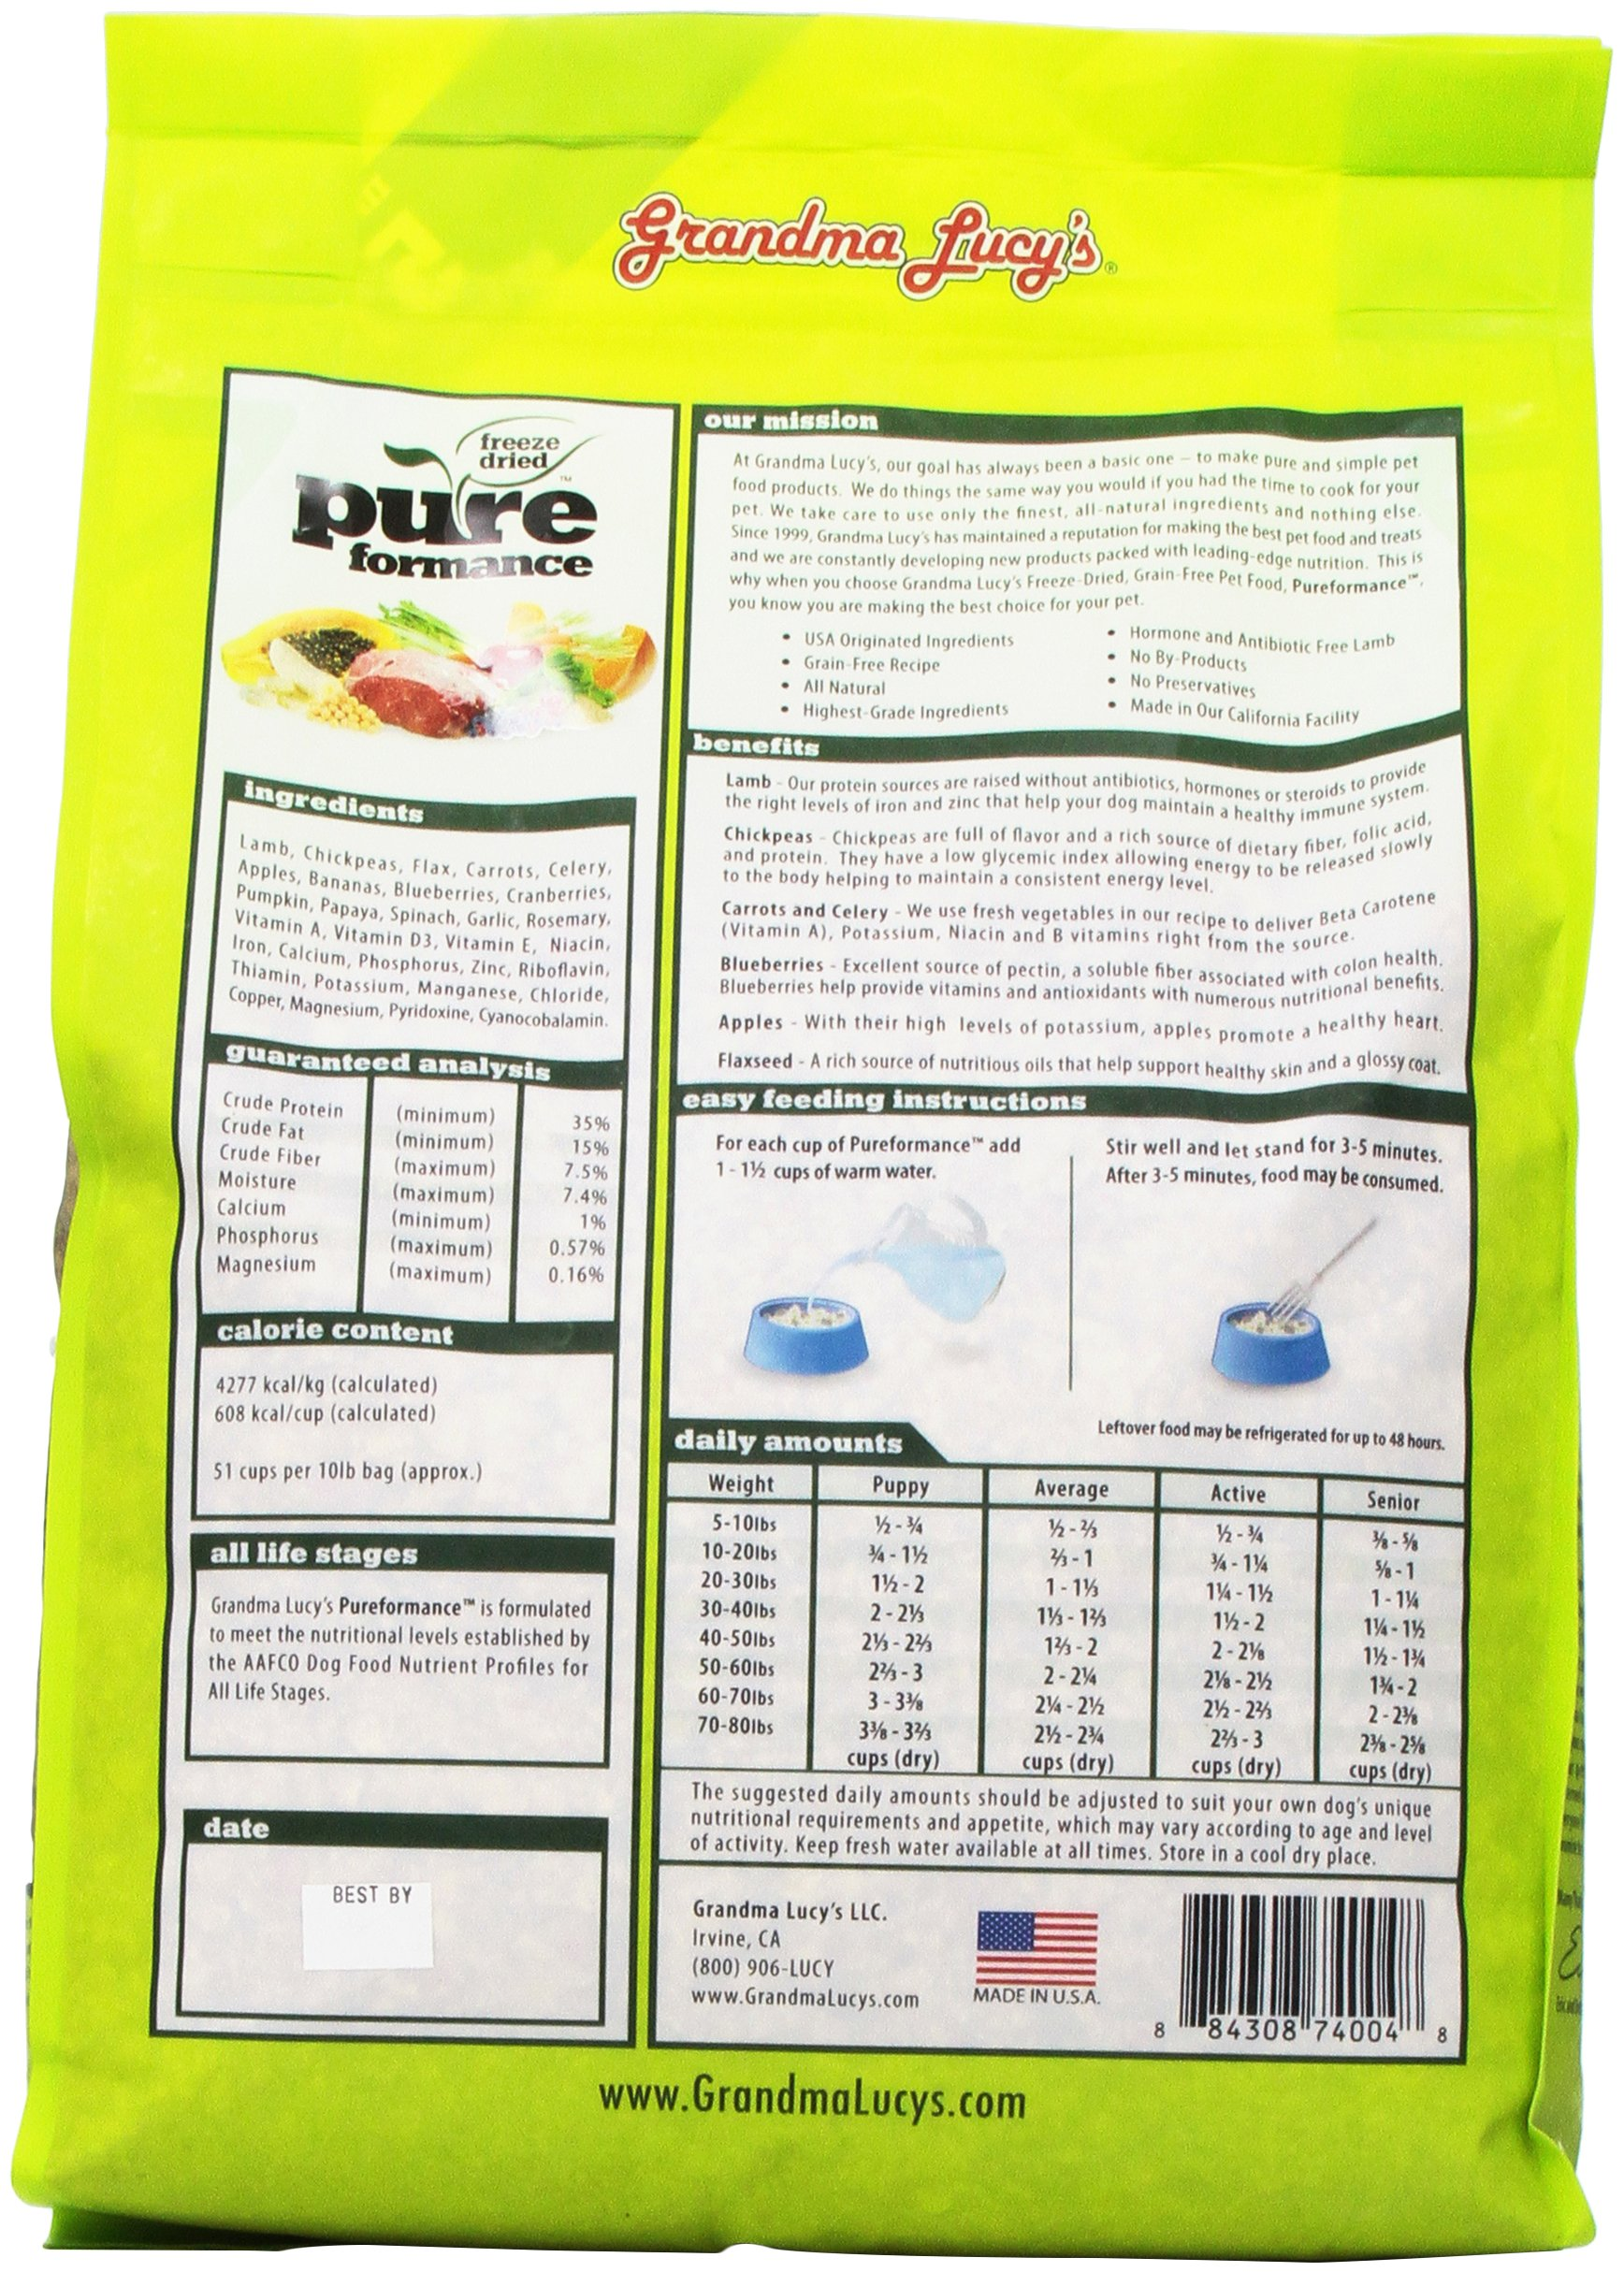 GRANDMA LUCY'S 844214 Pureformance Grain Free Lamb Food for Dogs, 10-Pound by Grandma Lucy's (Image #5)